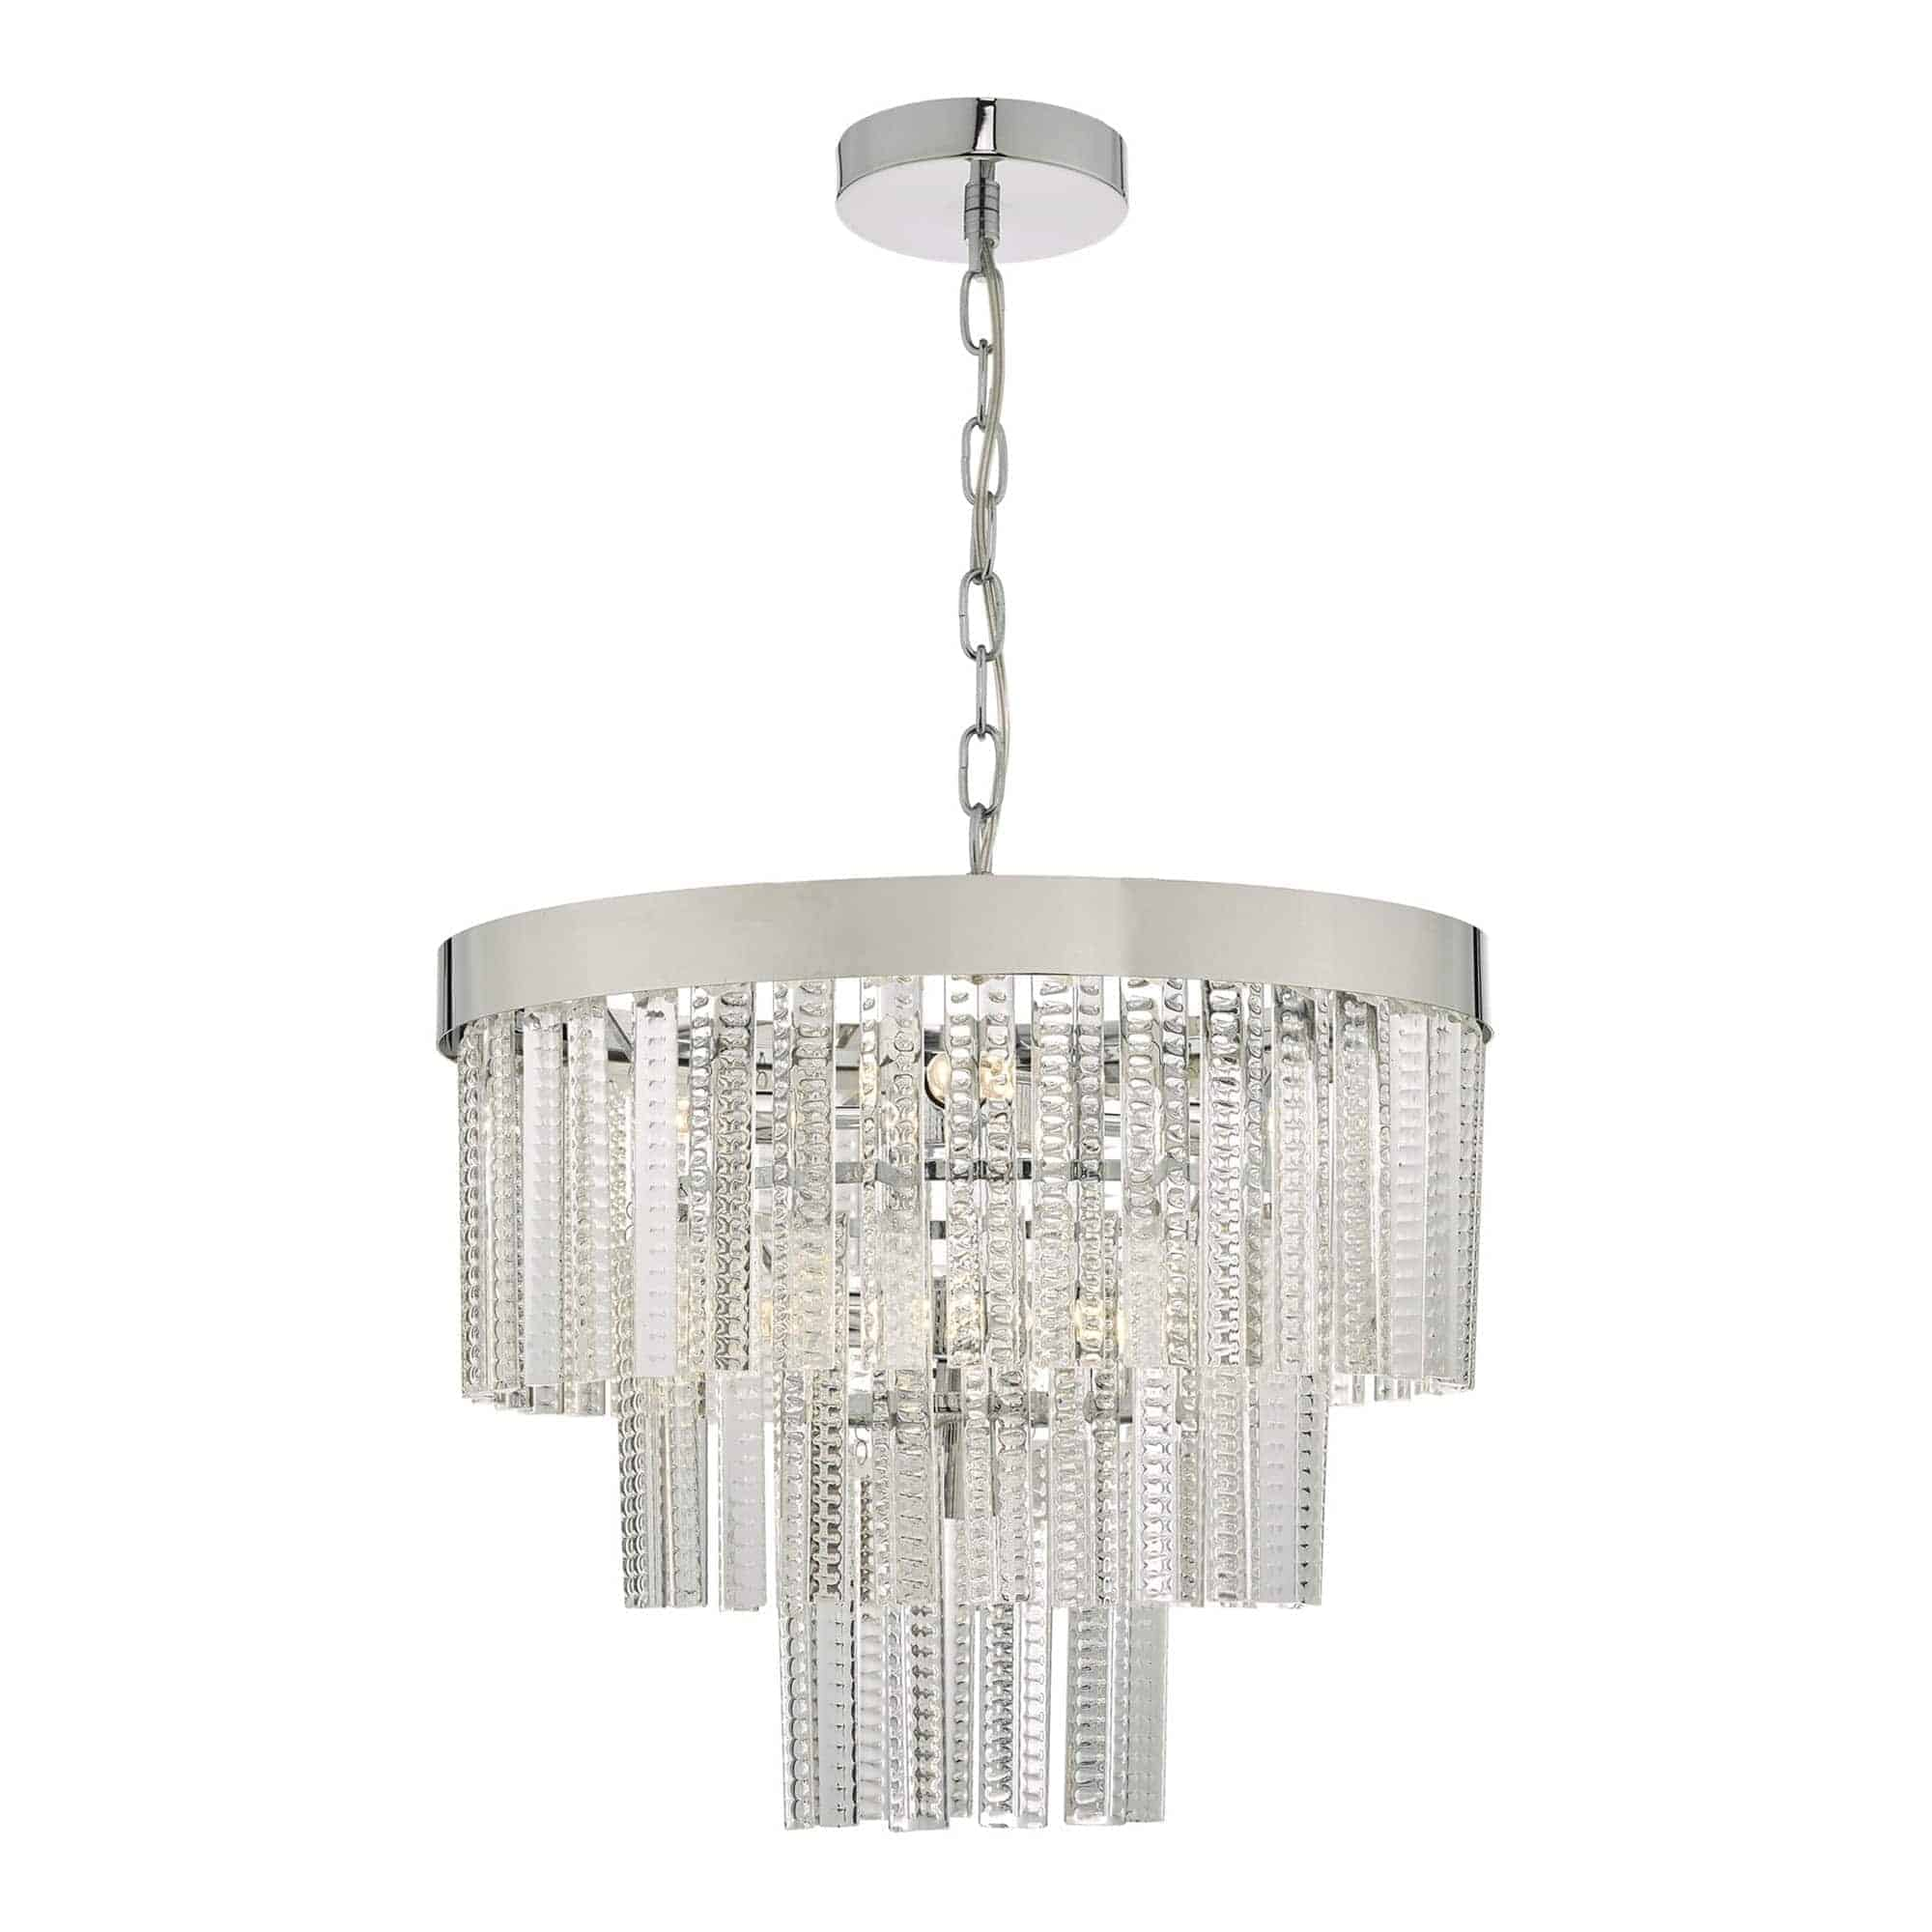 Dar LOR3408 Lorant 7 Light Tier Pendant Clear & Polished Chrome